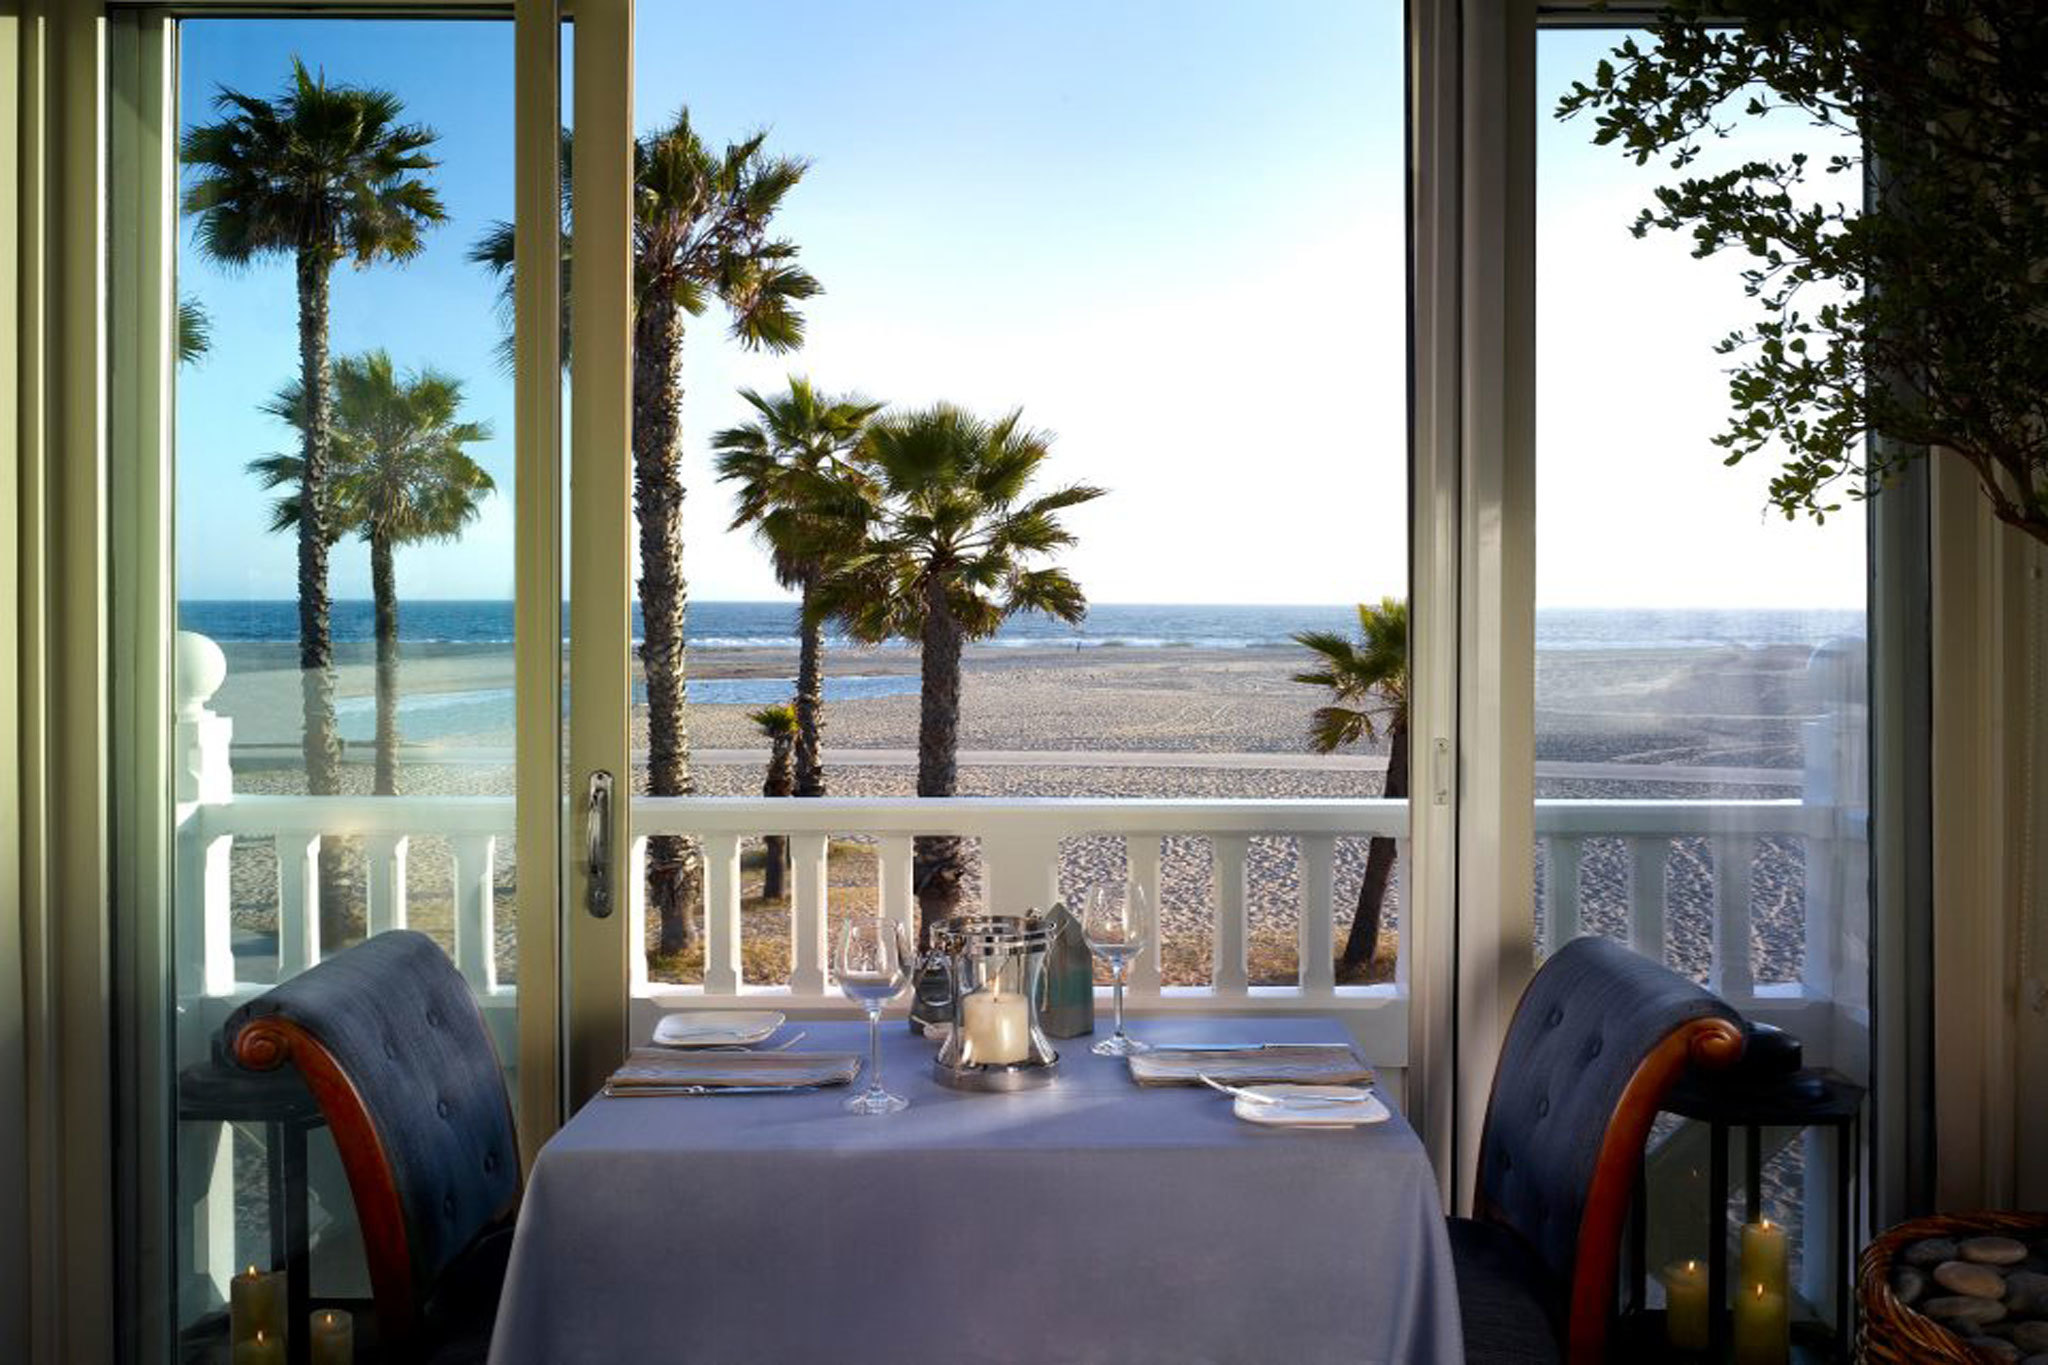 Discover The Best Romantic Restaurants In Los Angeles